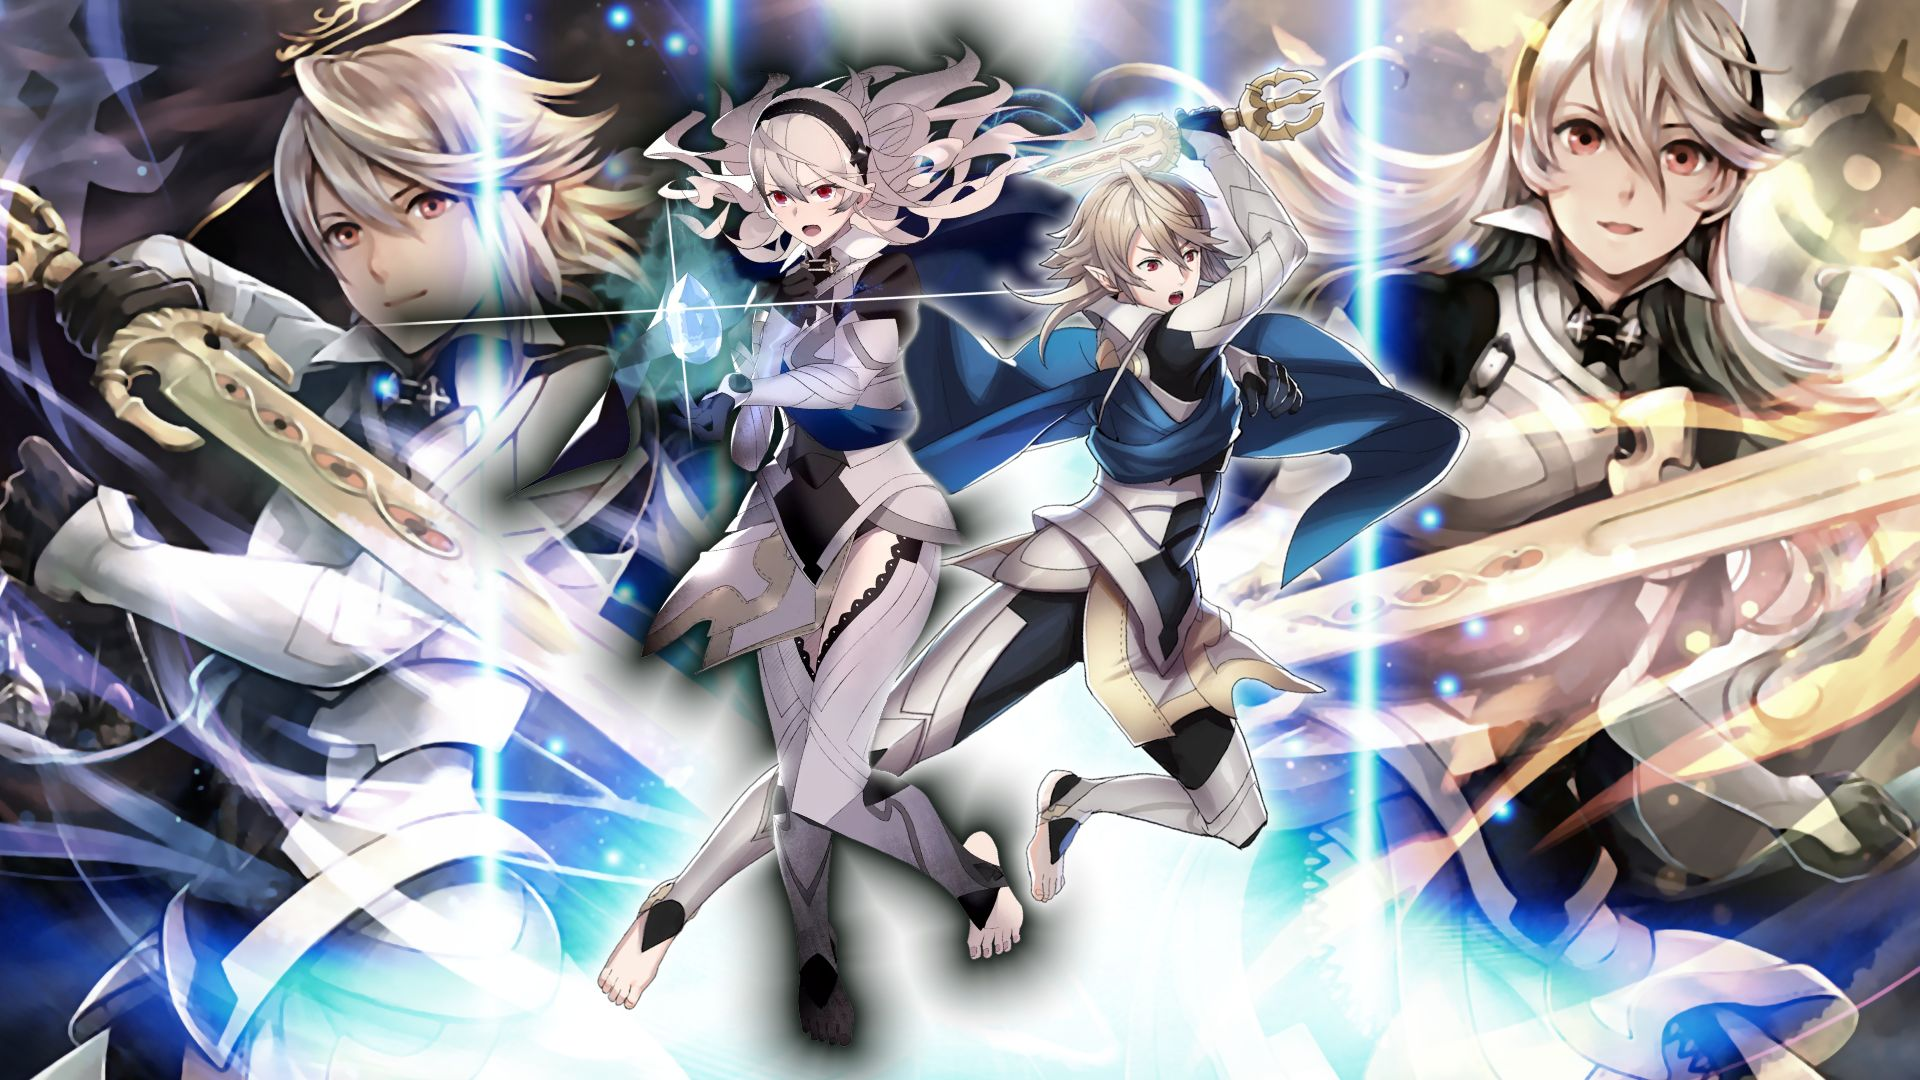 Fire Emblem Heroes Wallpaper - Corrin by IncognitoZA on ...